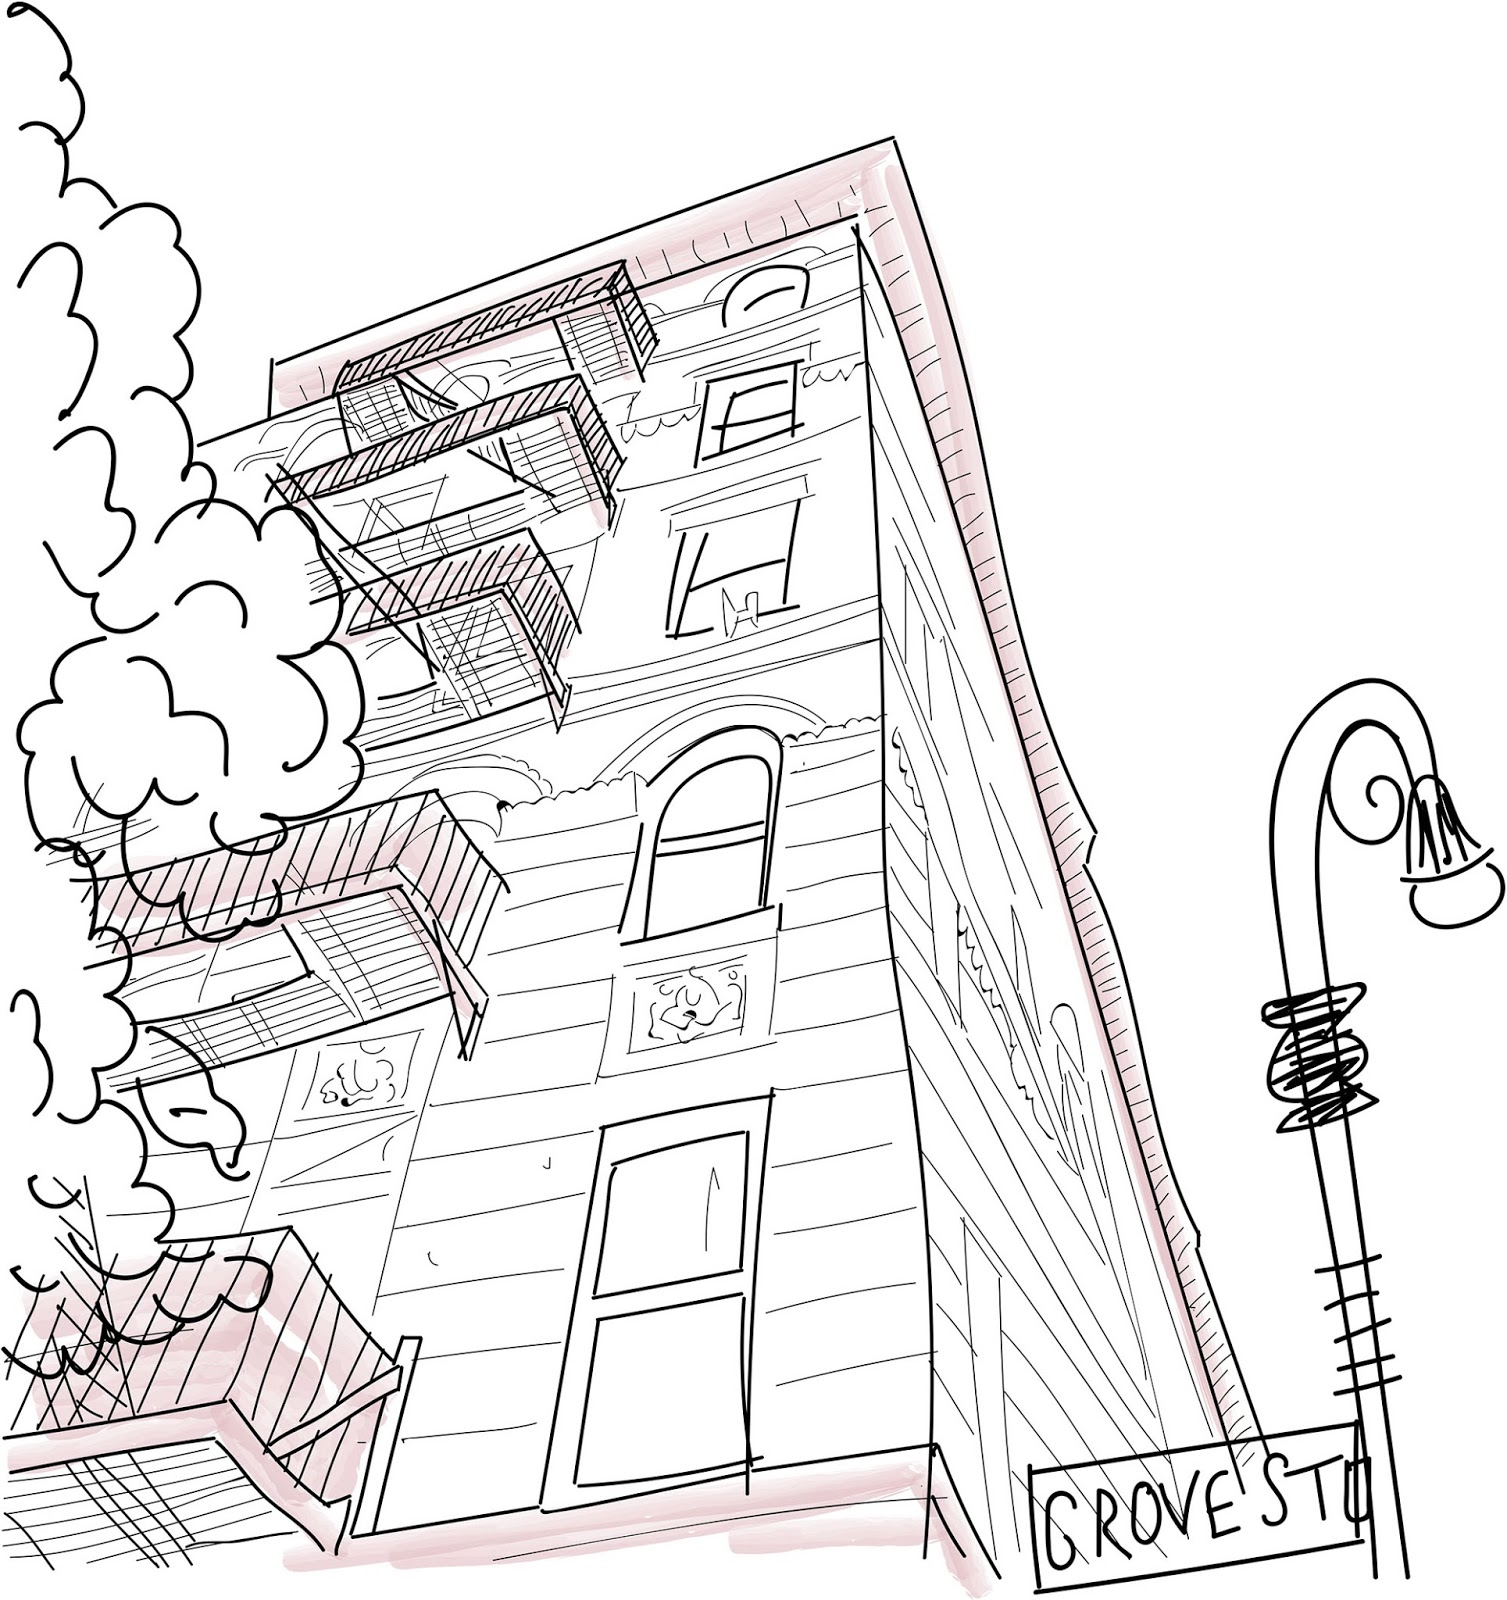 illustration of friends apartment, Monica's apartment grove street New York